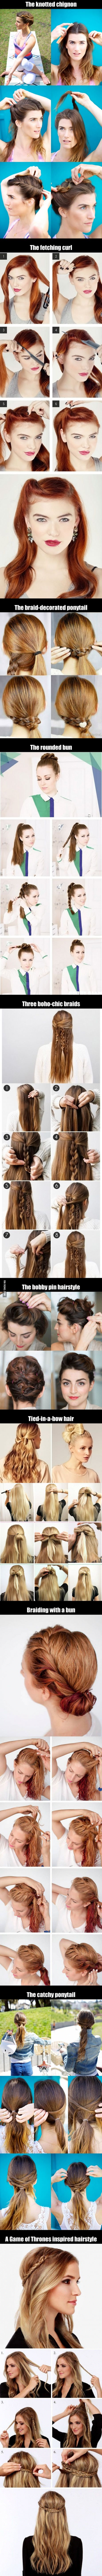 10 Easy Hairstyles For Girls In 5 Minutes. Which one do you like the best, guys and girls?